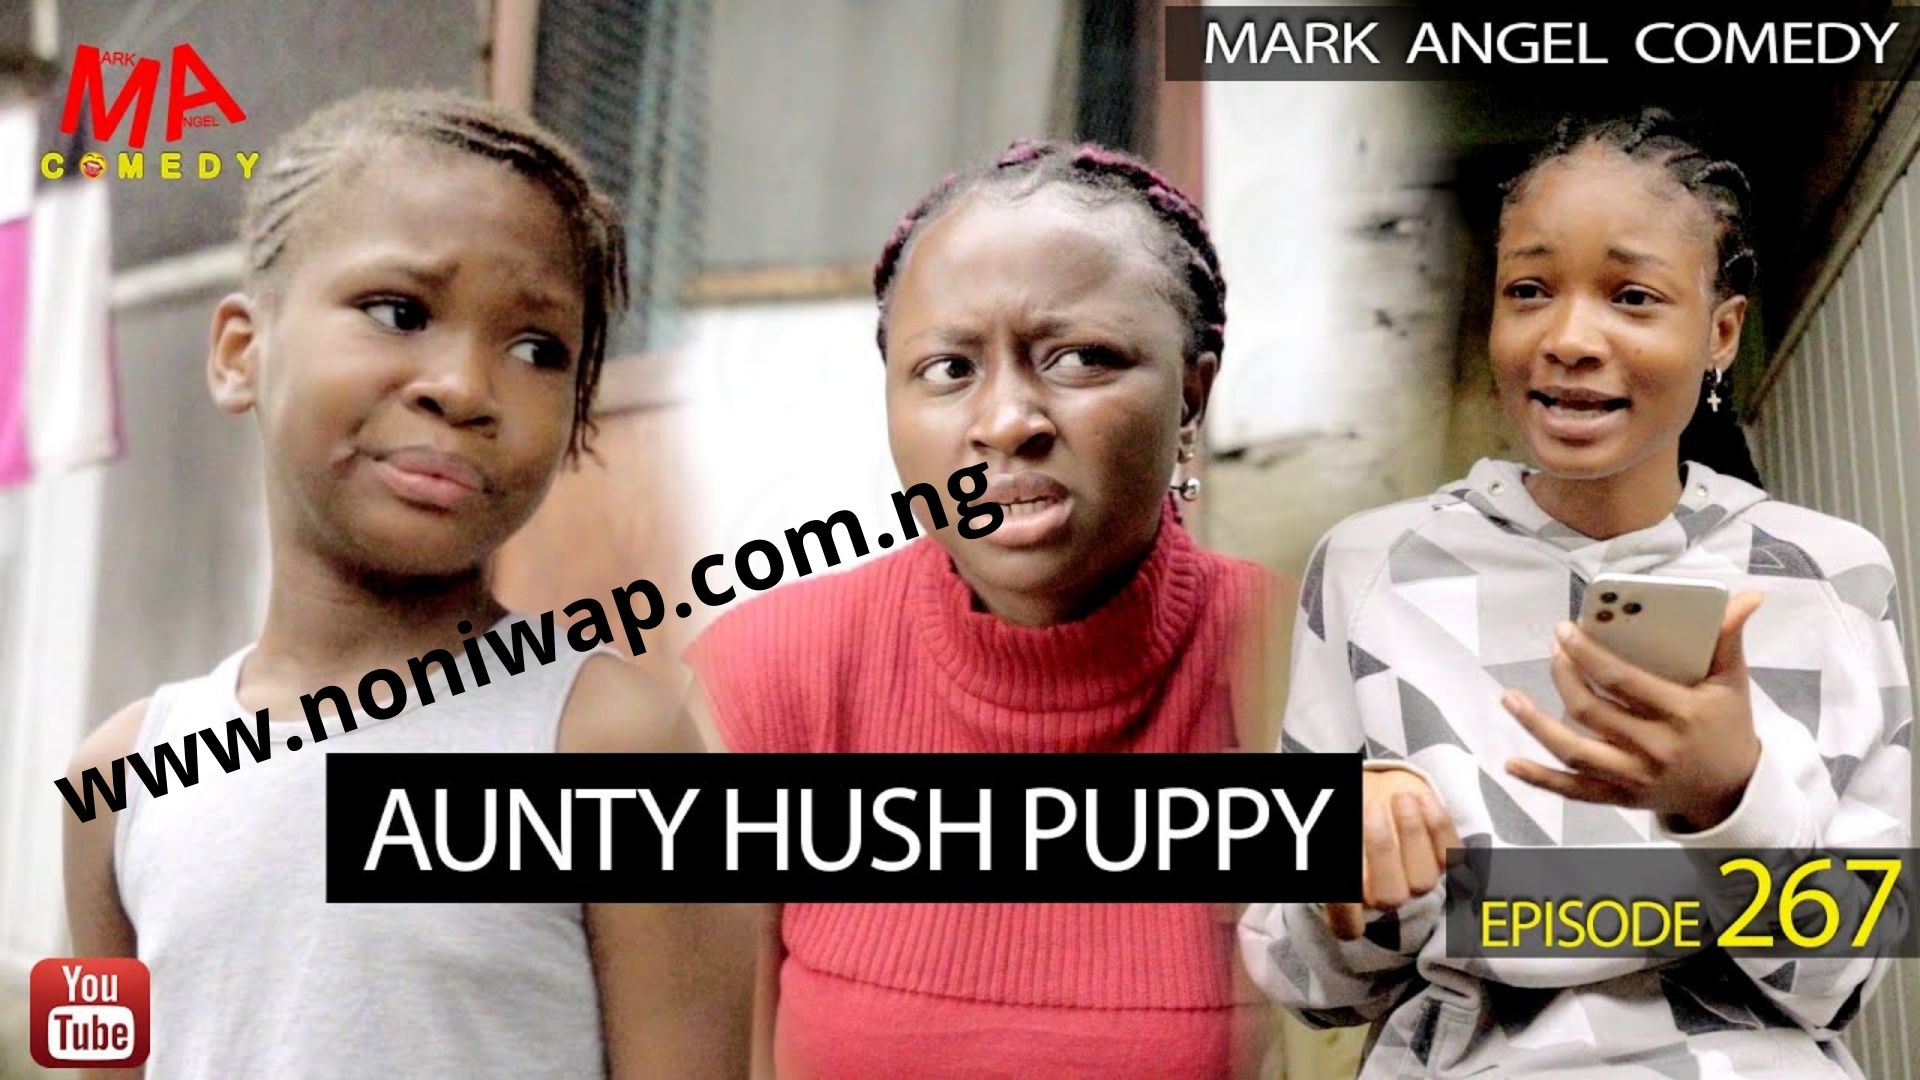 DOWNLOAD: AUNTY HUSH PUPPY (Mark Angel Comedy) (Episode 267)